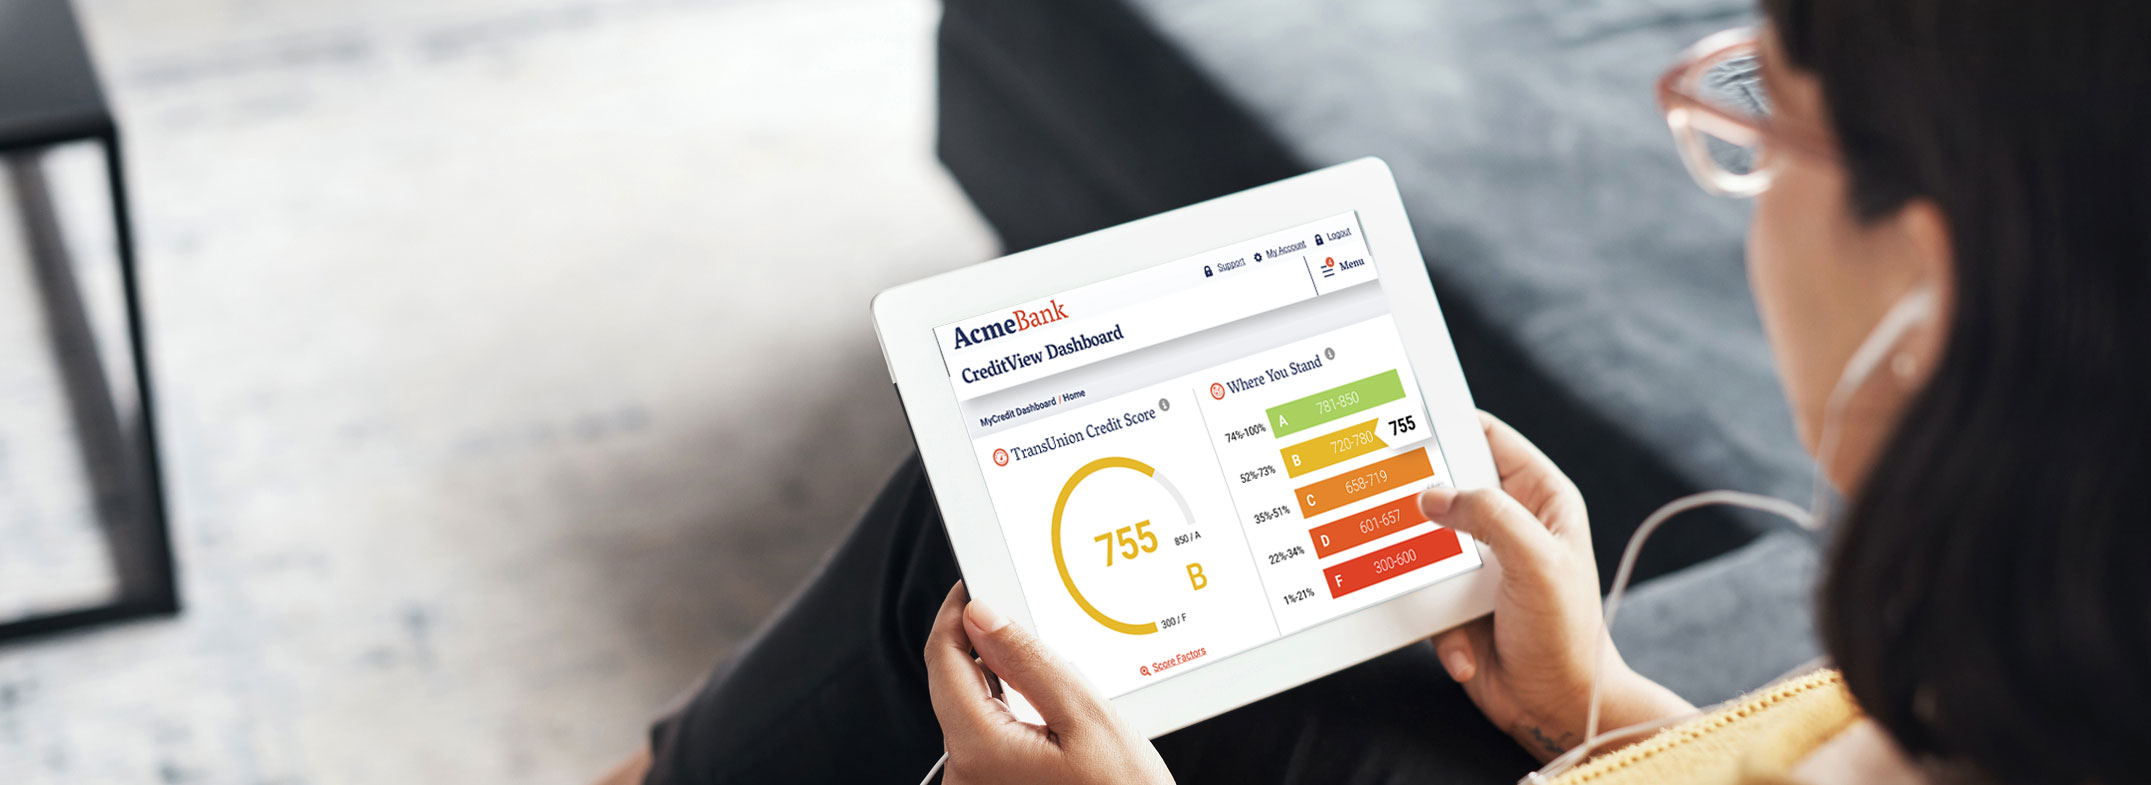 CreditView Dashboard product on tablet